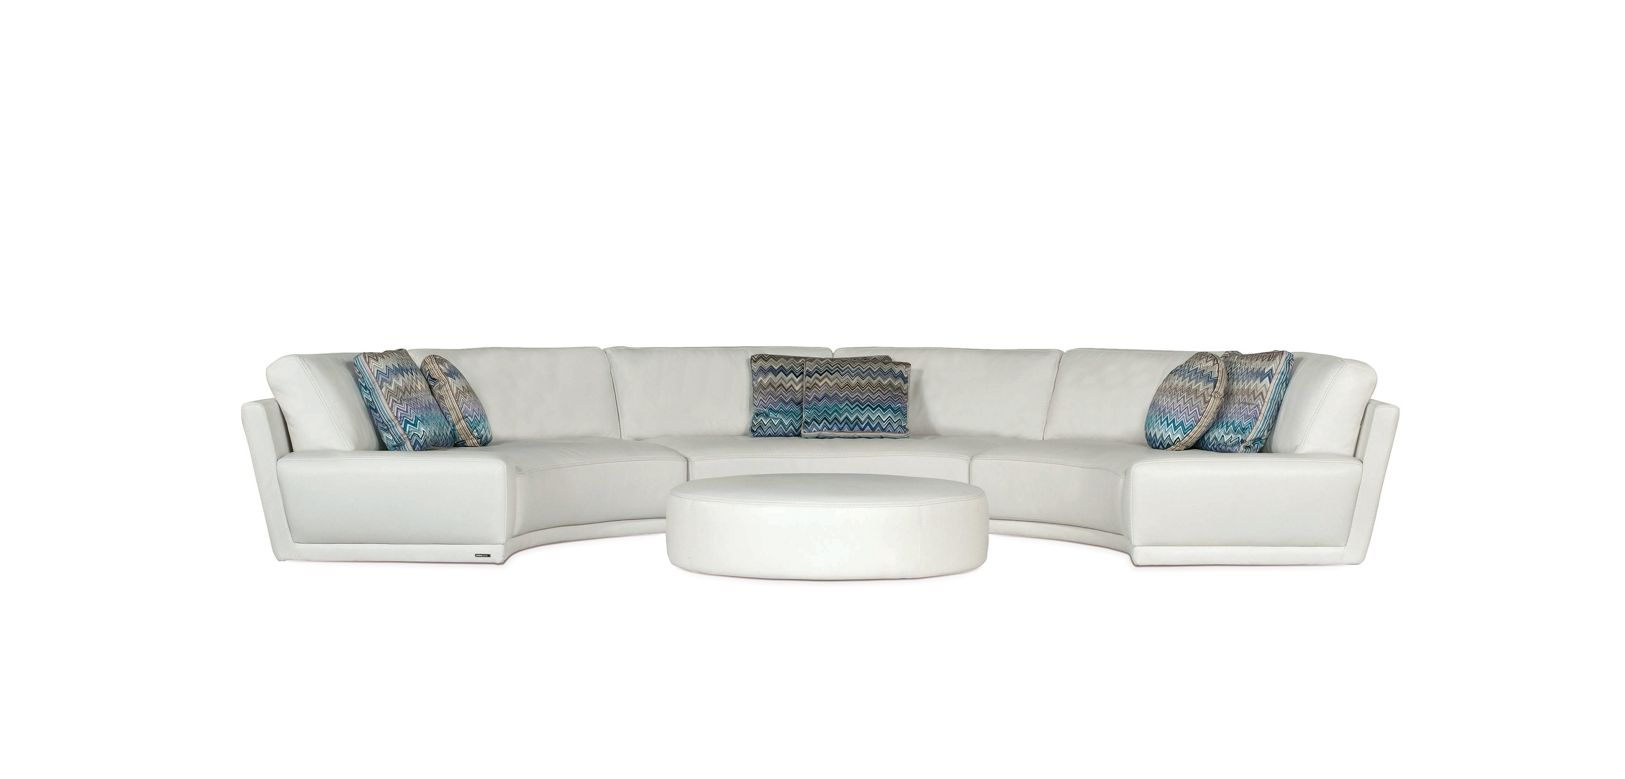 Canap composable arrondi solstice roche bobois for Canape a dossier arrondi